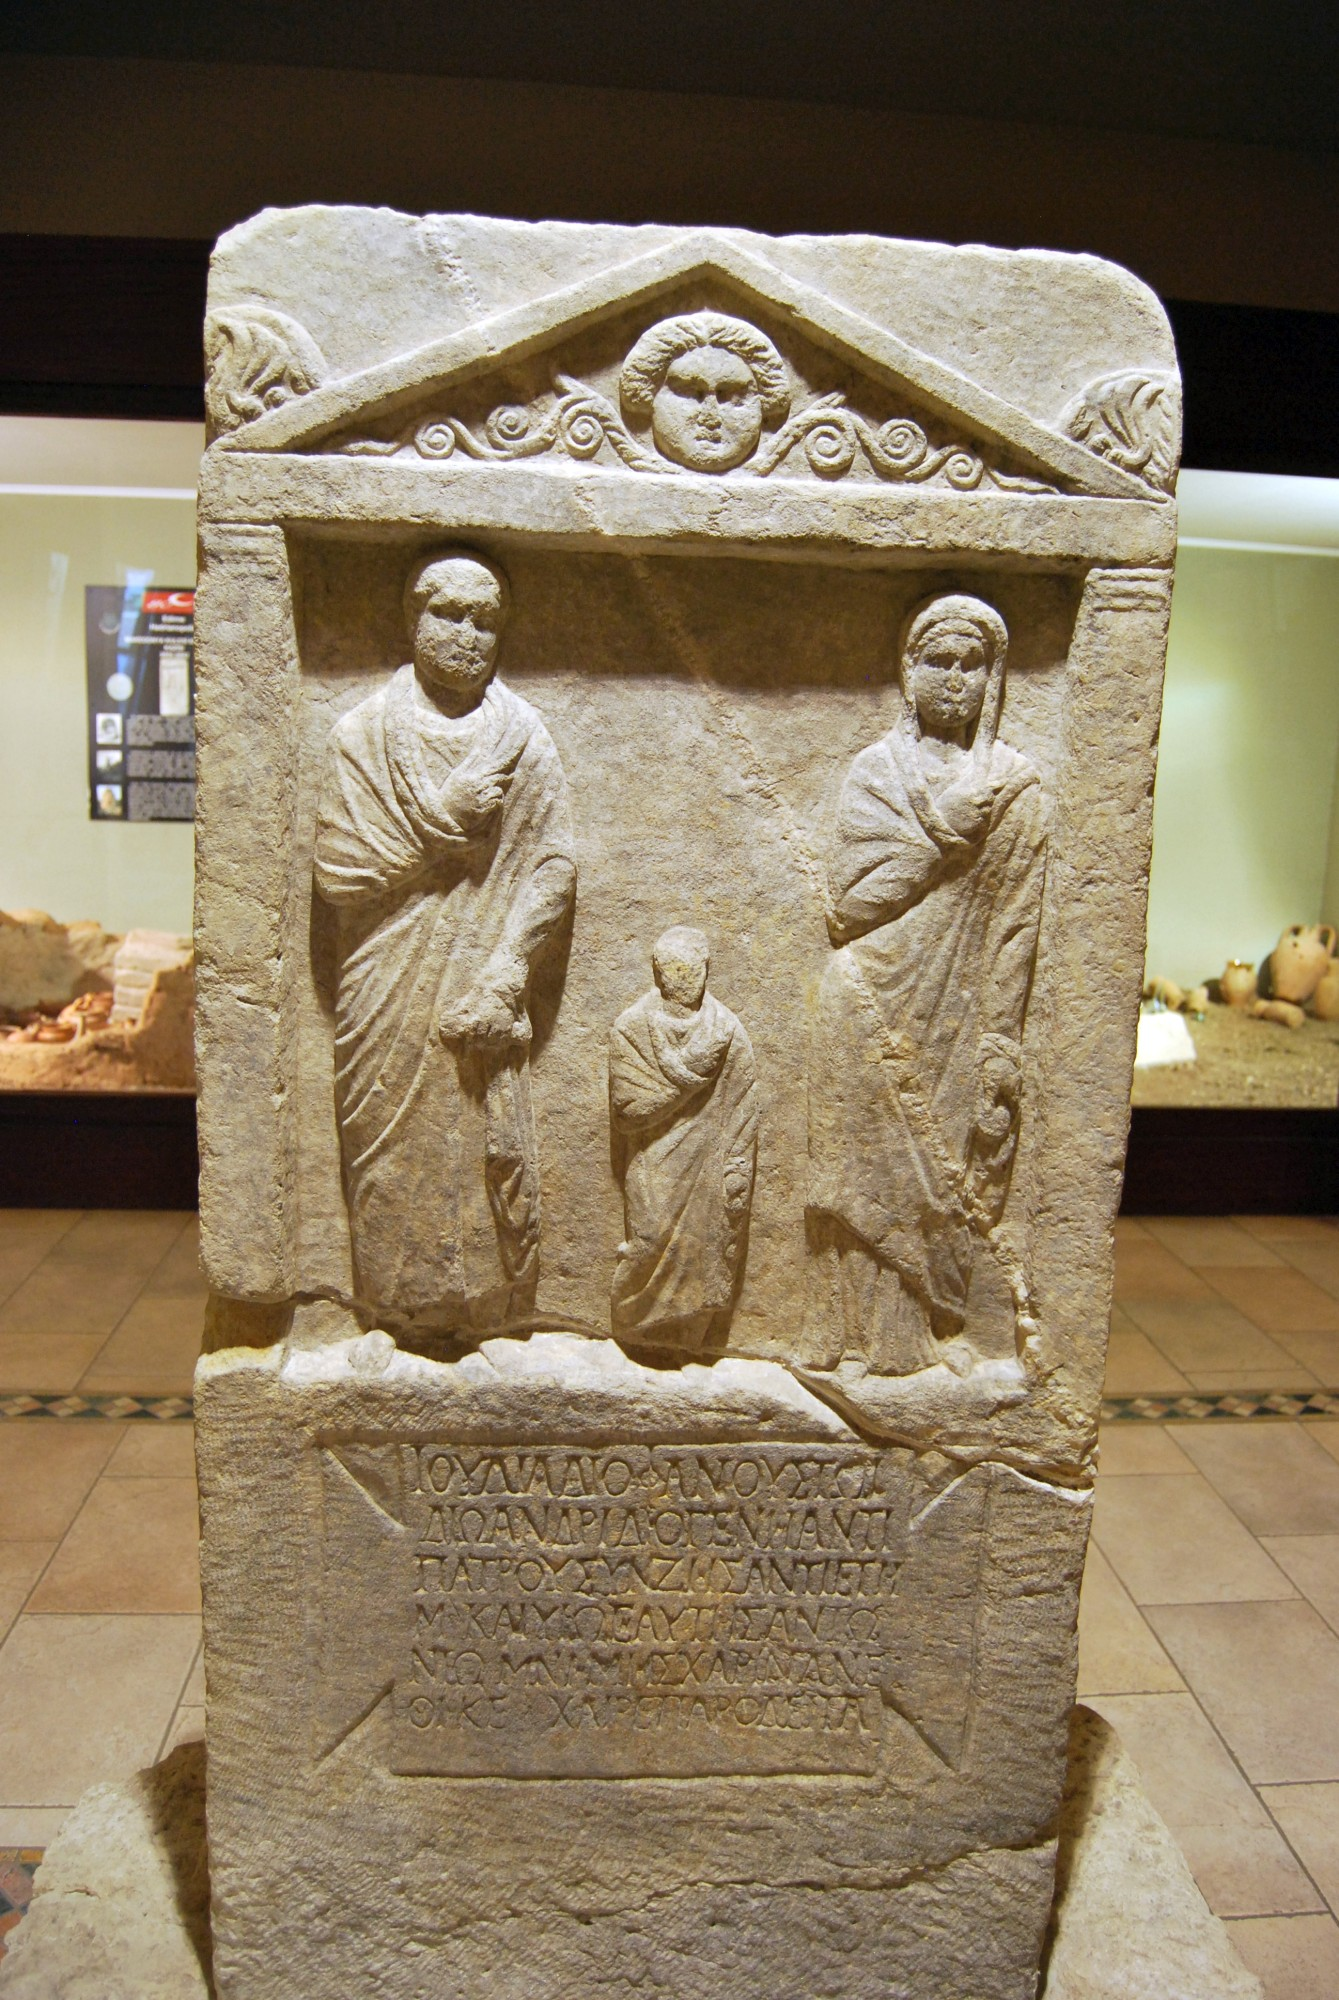 Grave stele from the 1st or the 2nd century CE, found near the Macedonian Tower, now in the Archaeological and Ethnographic Museum in Edirne